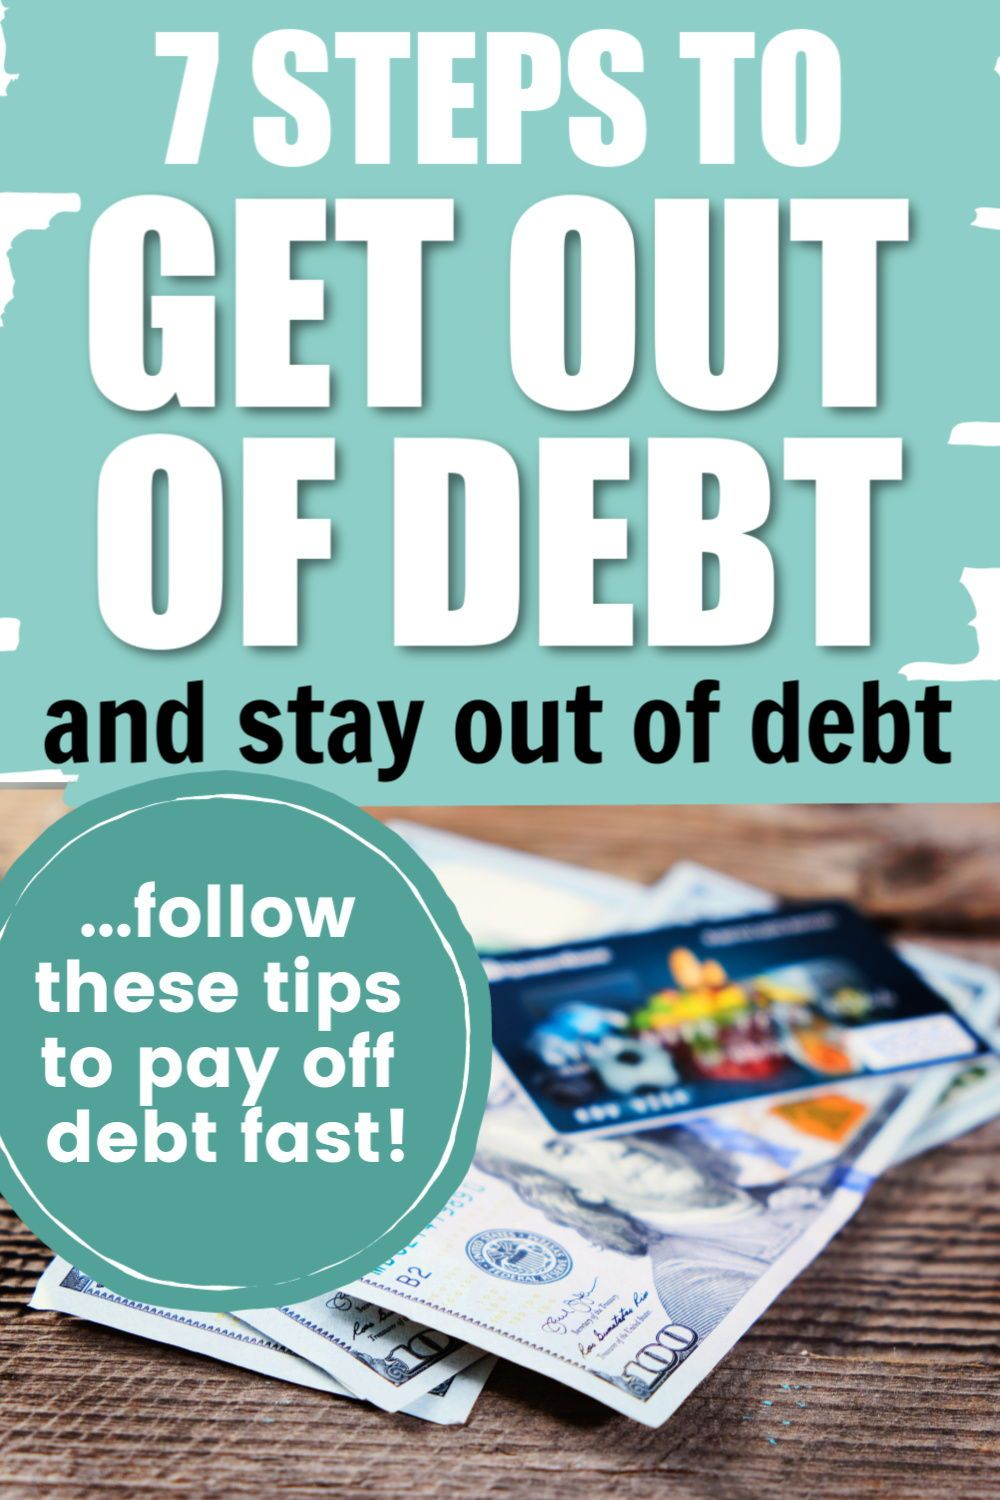 7 Steps to Paying Off Your Debt in 2020 Debt payoff plan